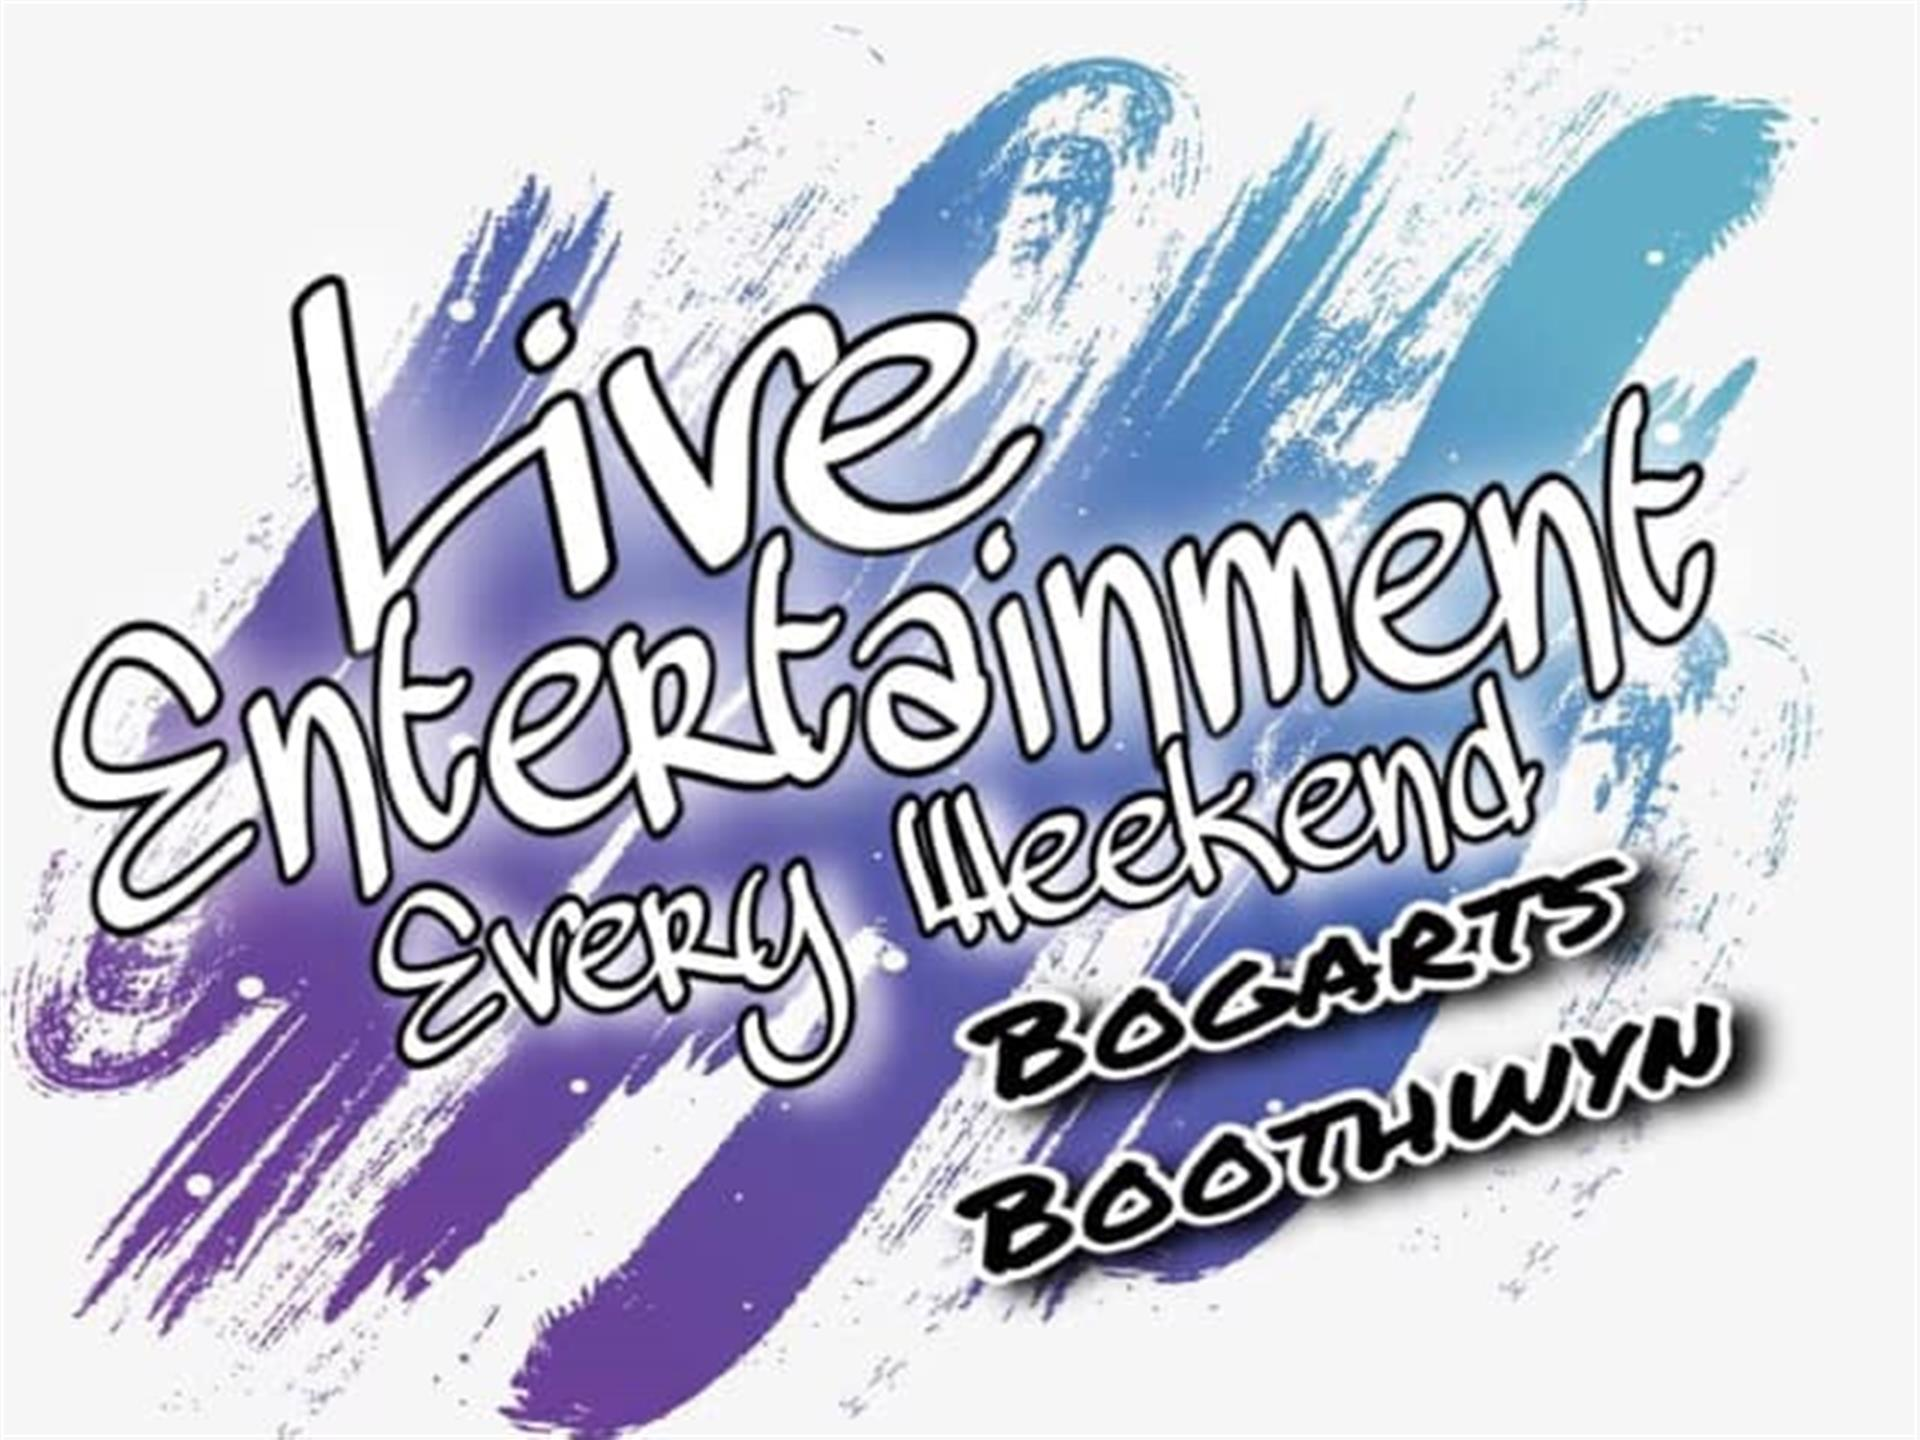 live entertainment every week at bogarts boothwyn